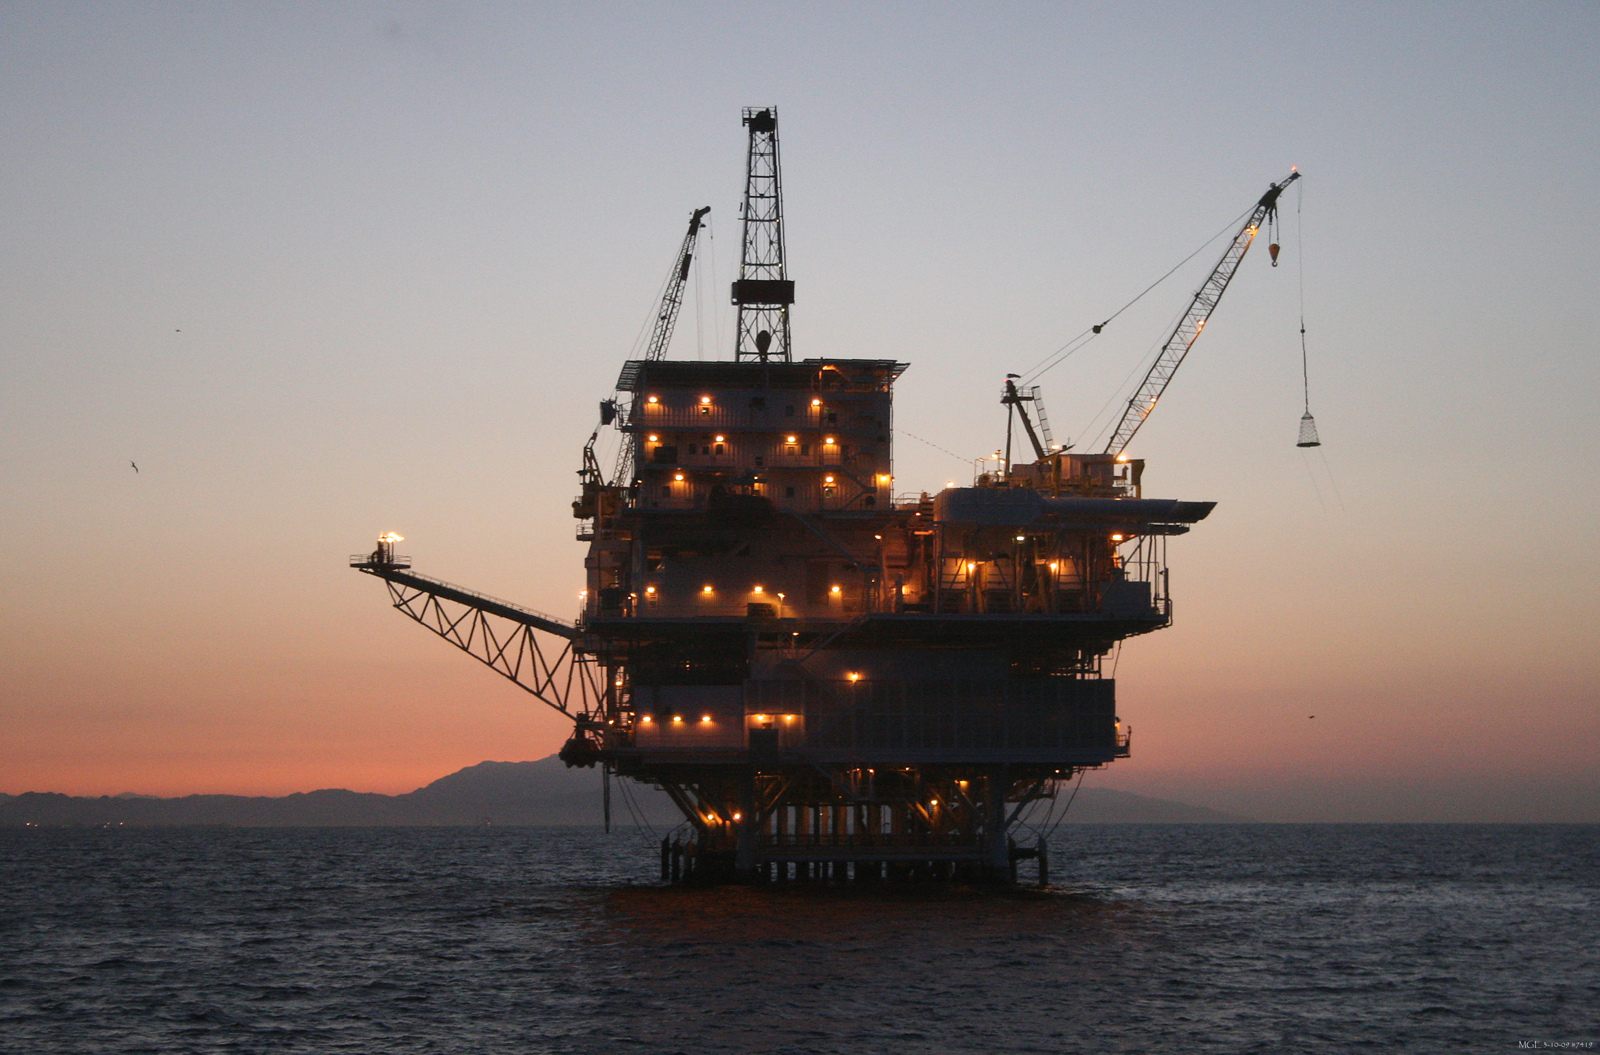 California Offshore Oil Platforms : Pictures and images for oil gas exploration